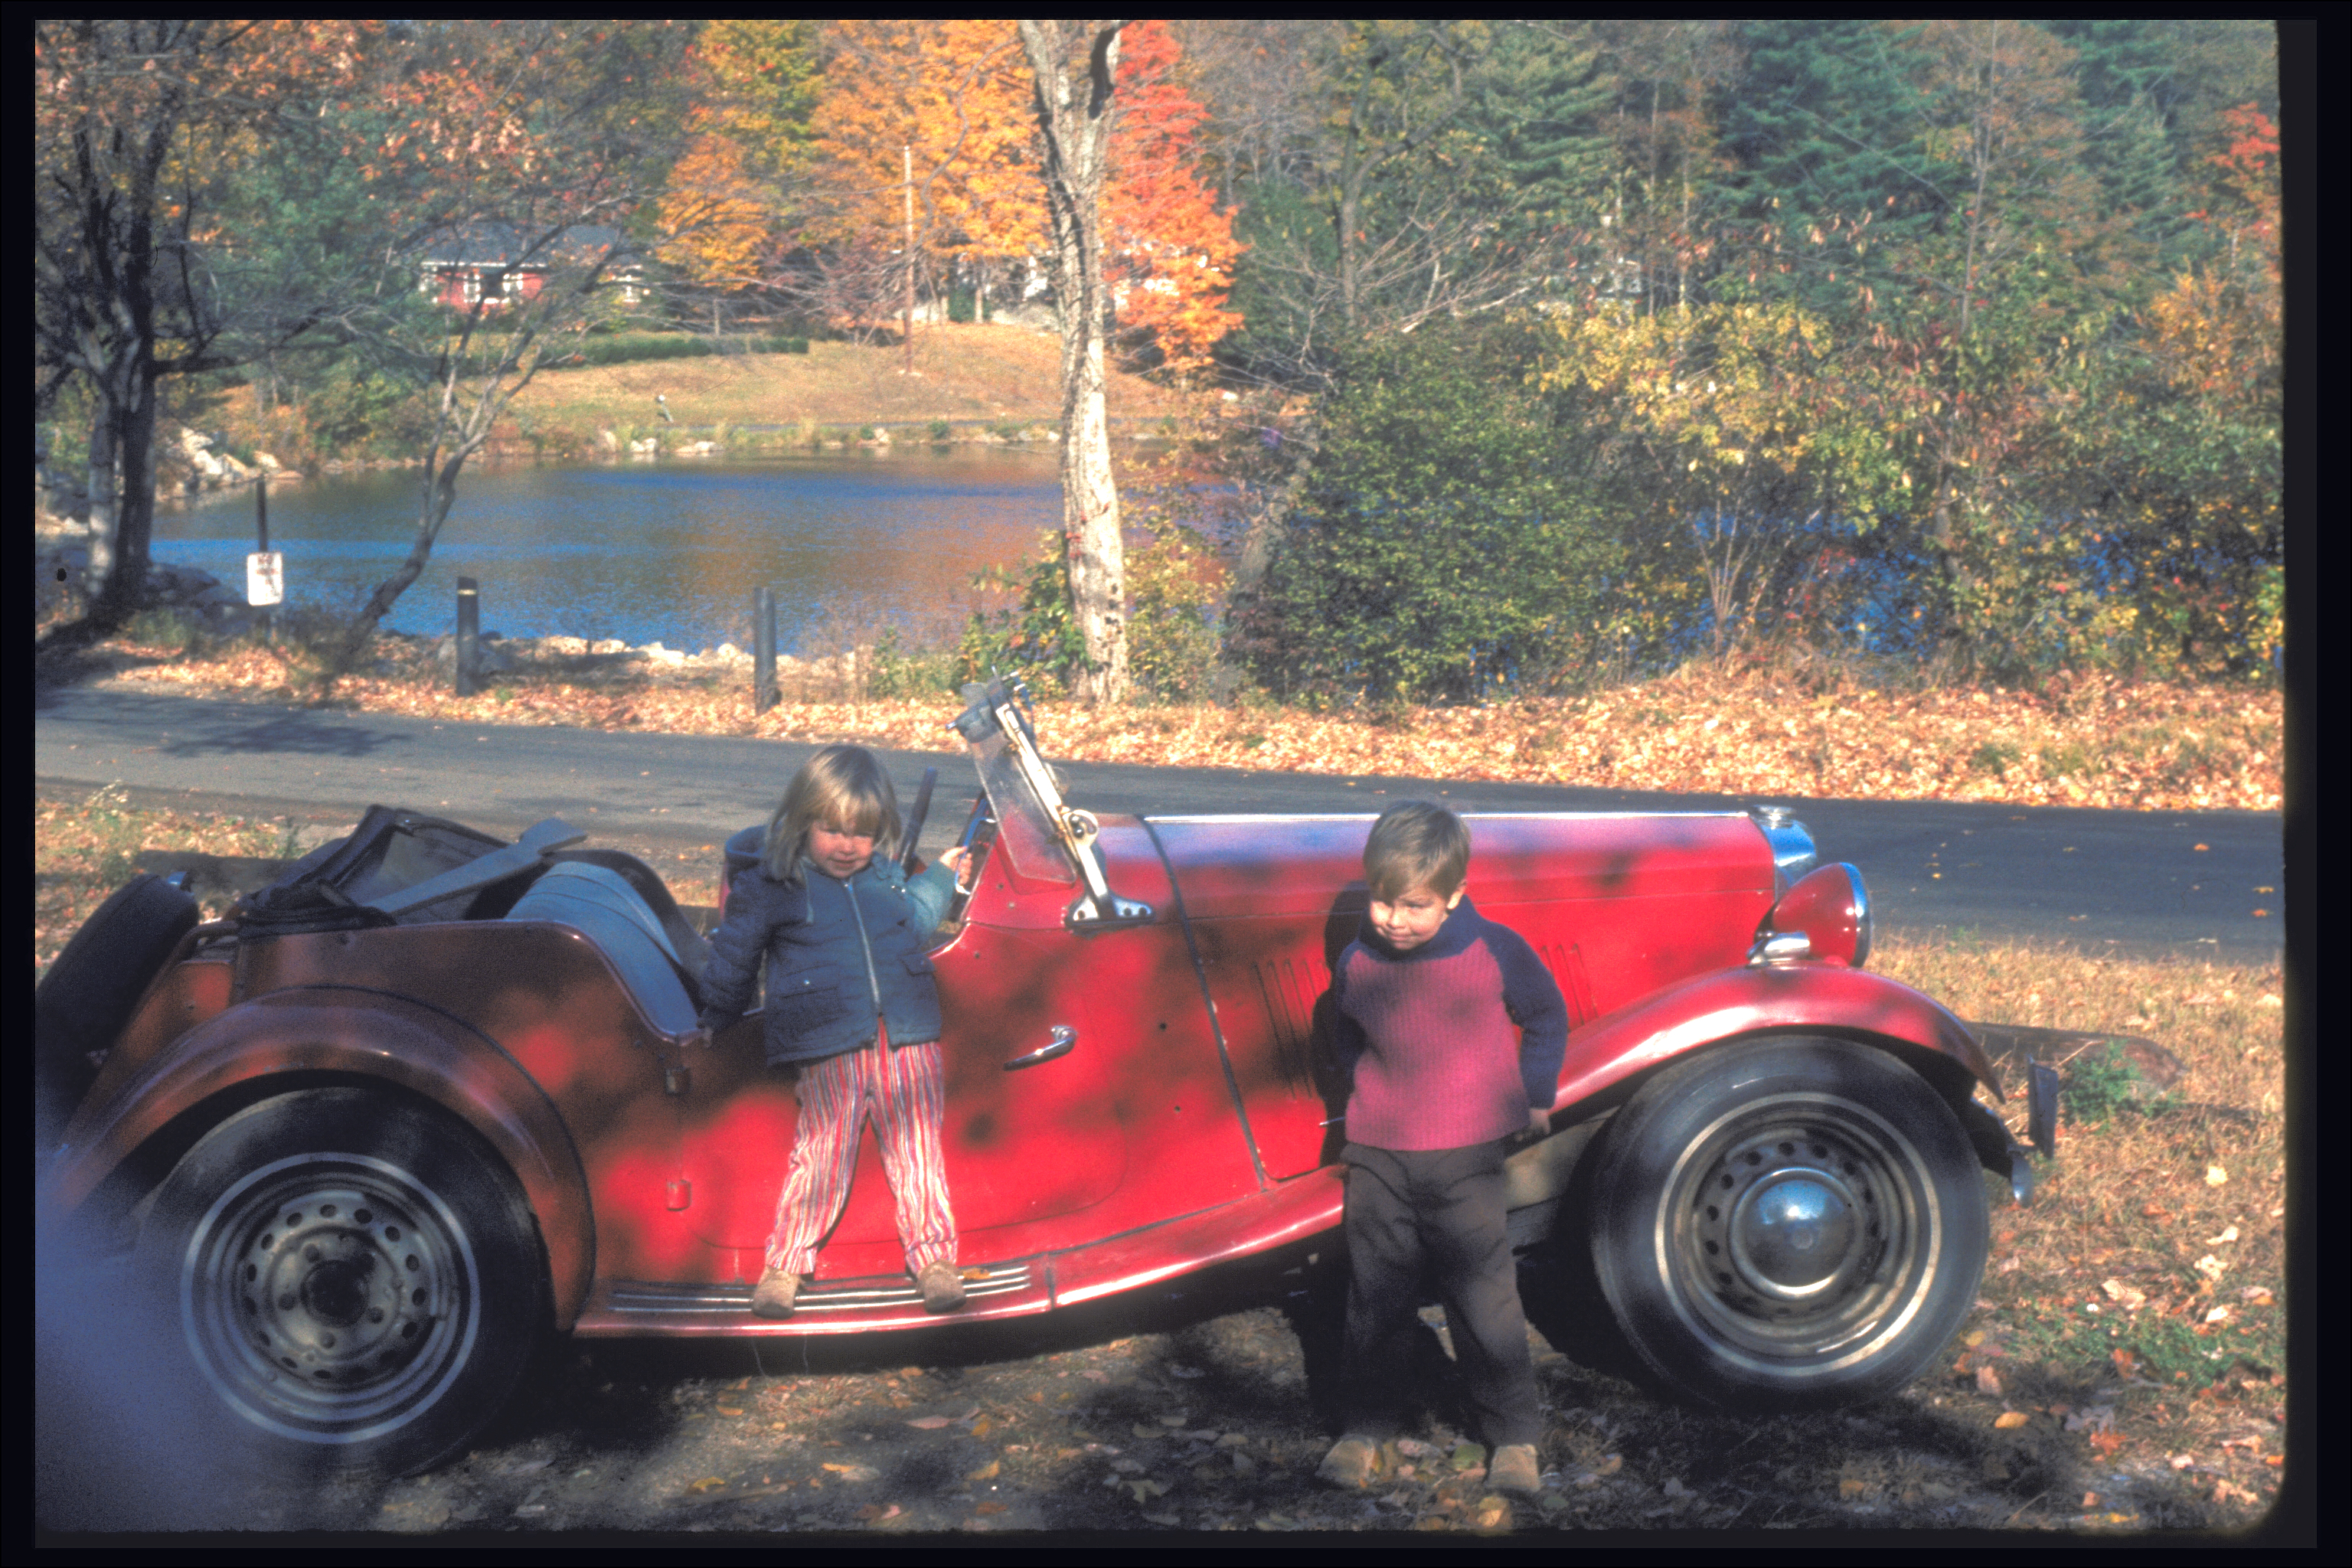 Rob and Miriam On the MG, 1975